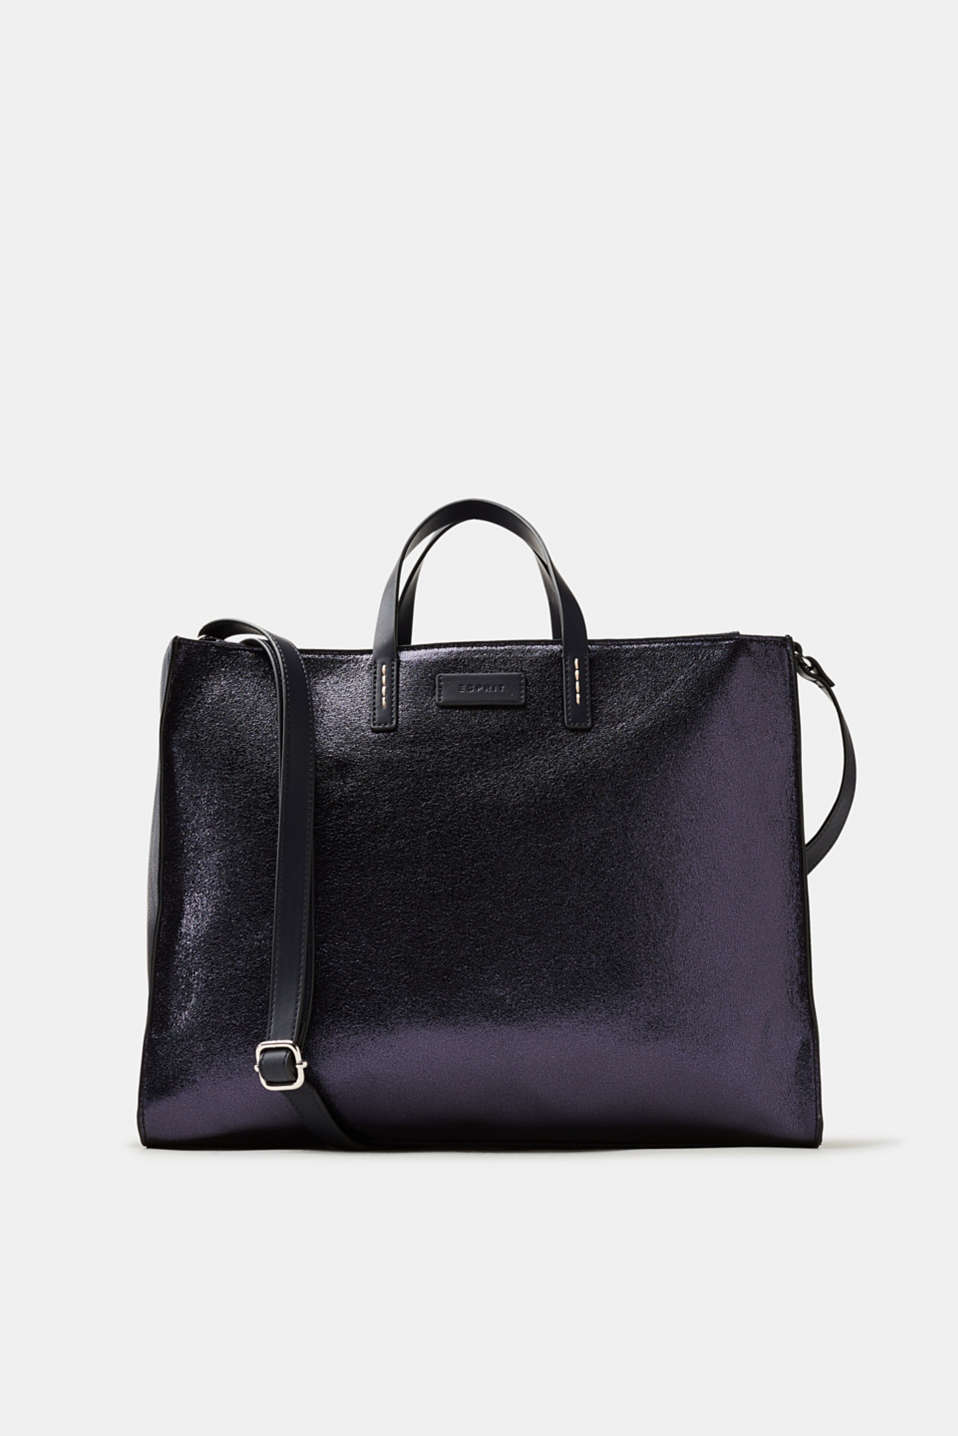 Esprit - Metallic-Tote Bag in gecrashter Leder-Optik